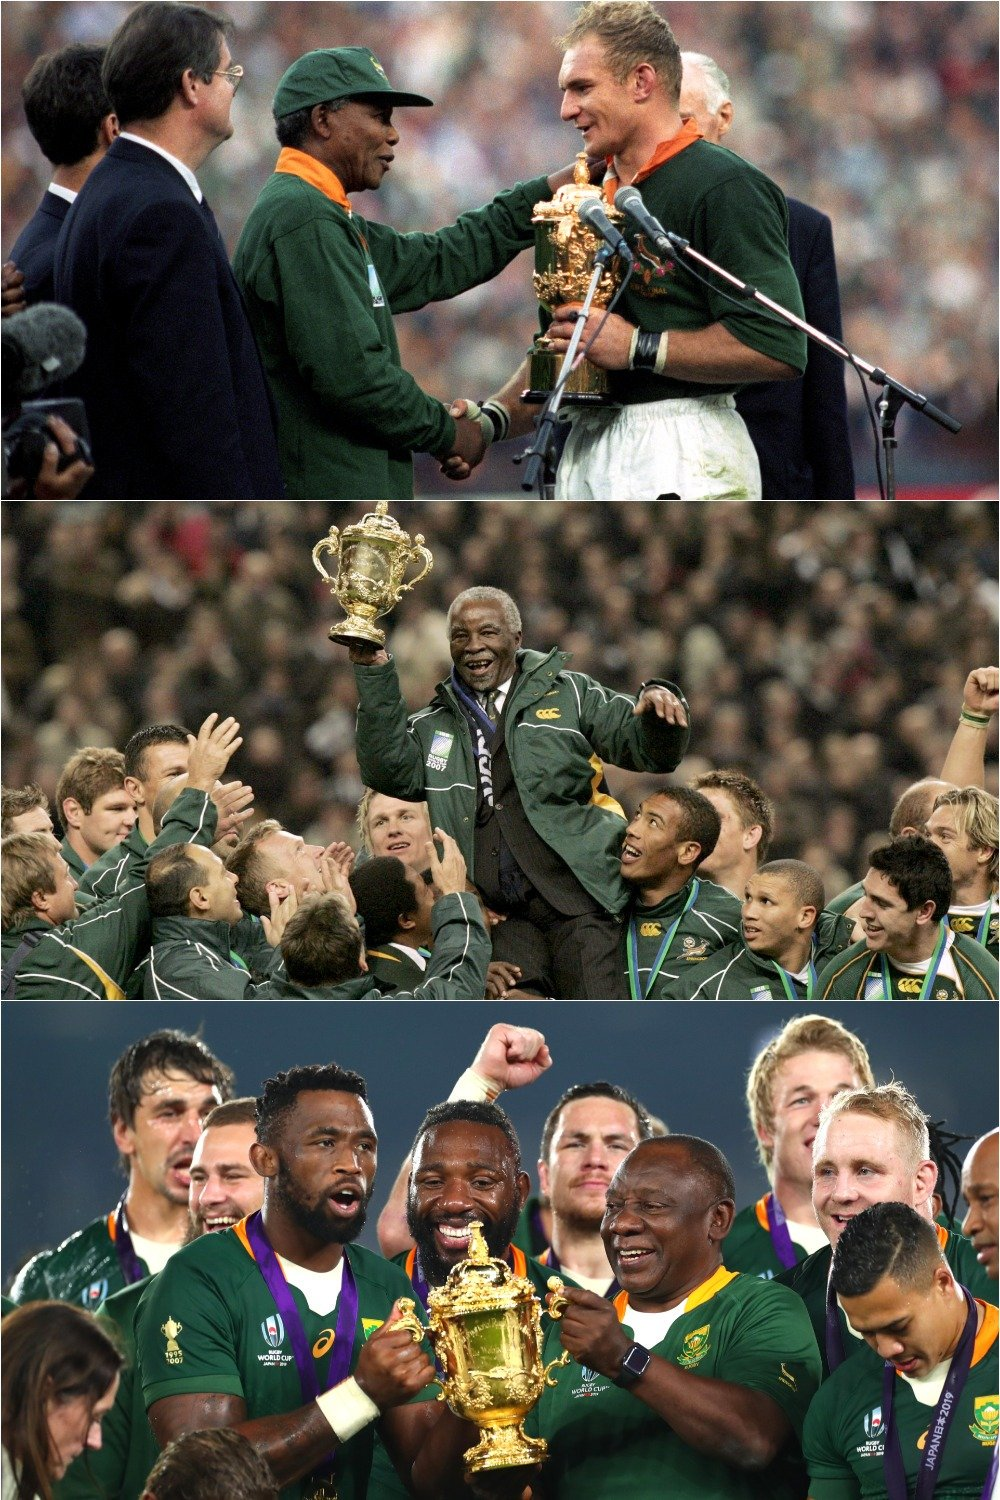 Supersport On Rugby World Cup Springbok Rugby Latest Sports News